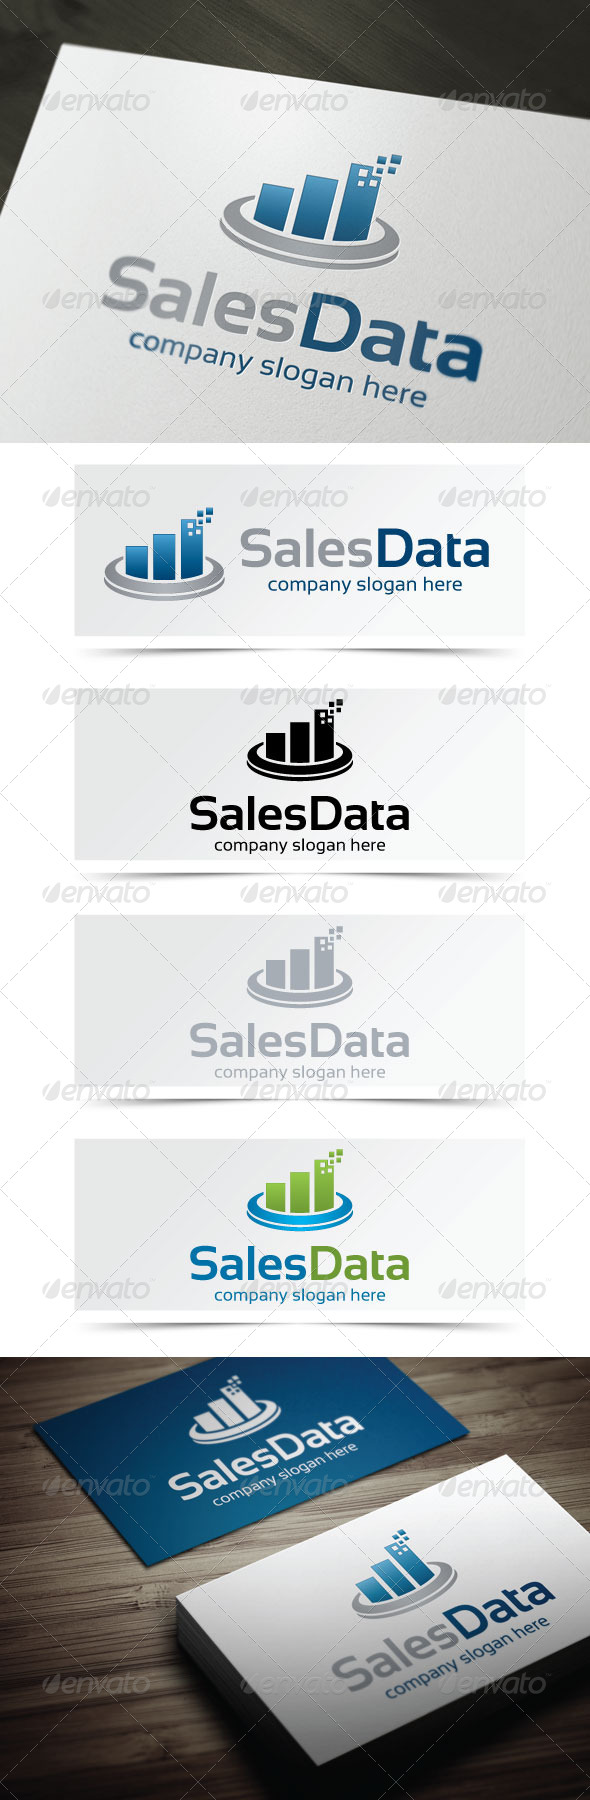 Sales Data - Symbols Logo Templates